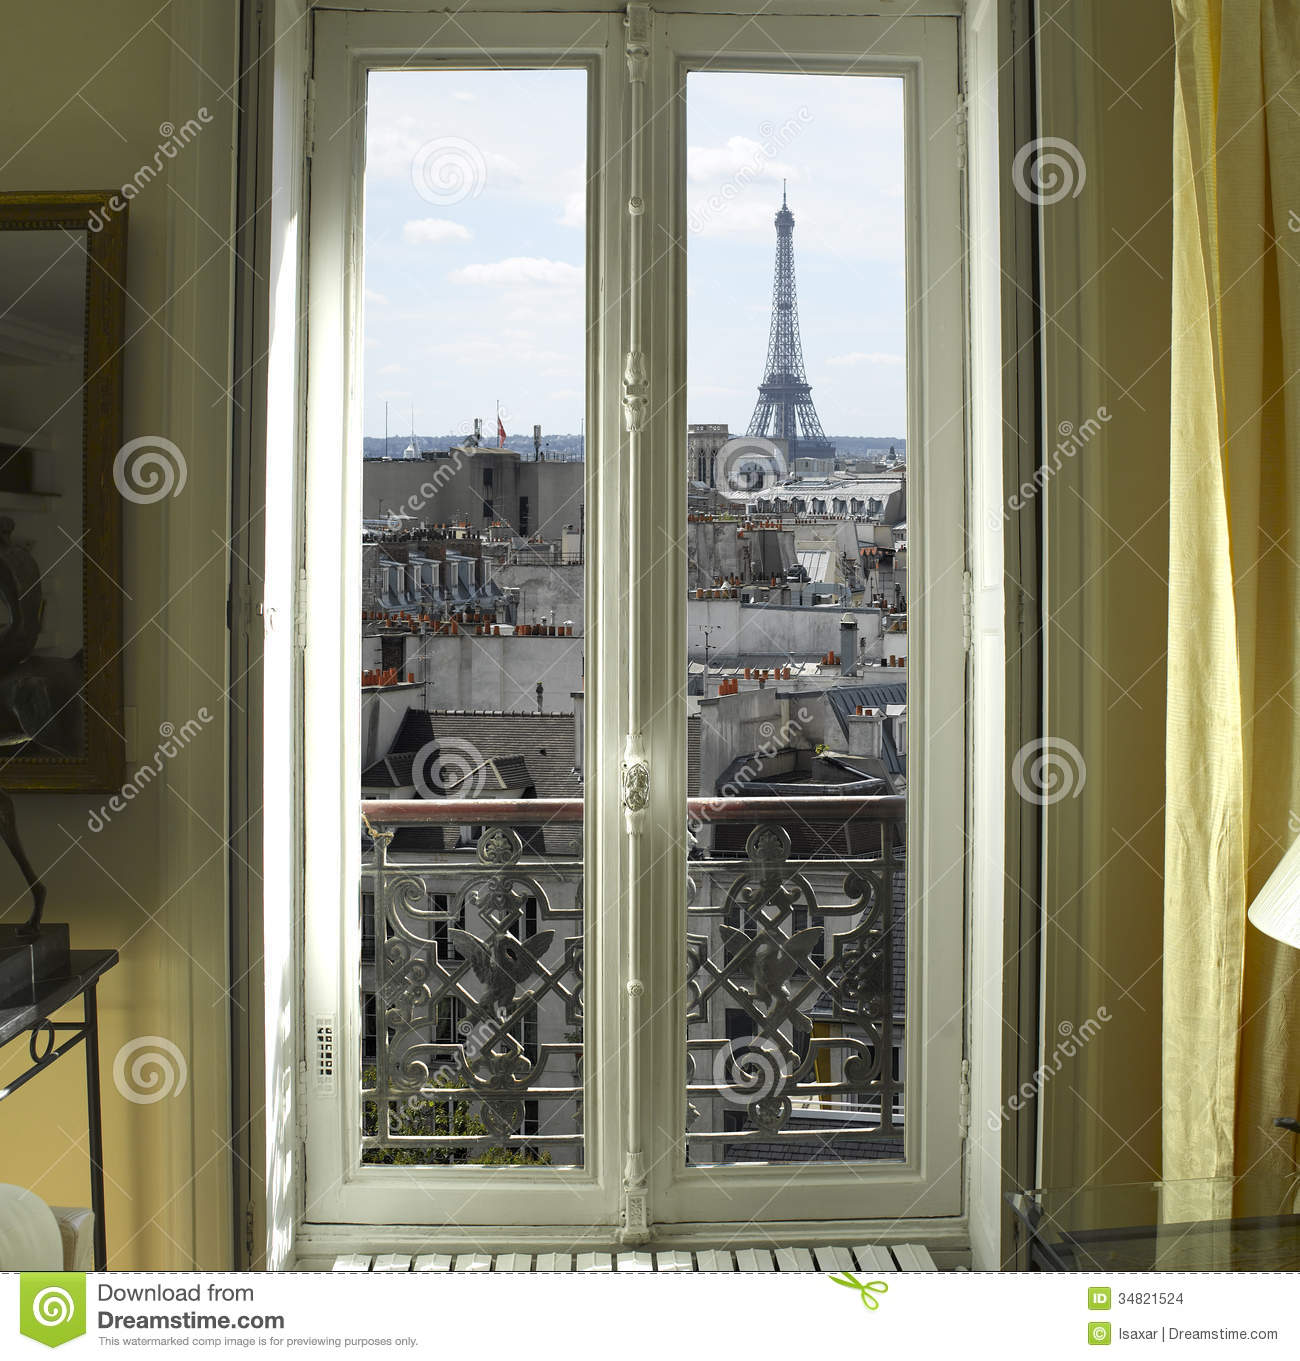 window with eiffel tower in paris stock photo image of eiffel appartment 34821524. Black Bedroom Furniture Sets. Home Design Ideas